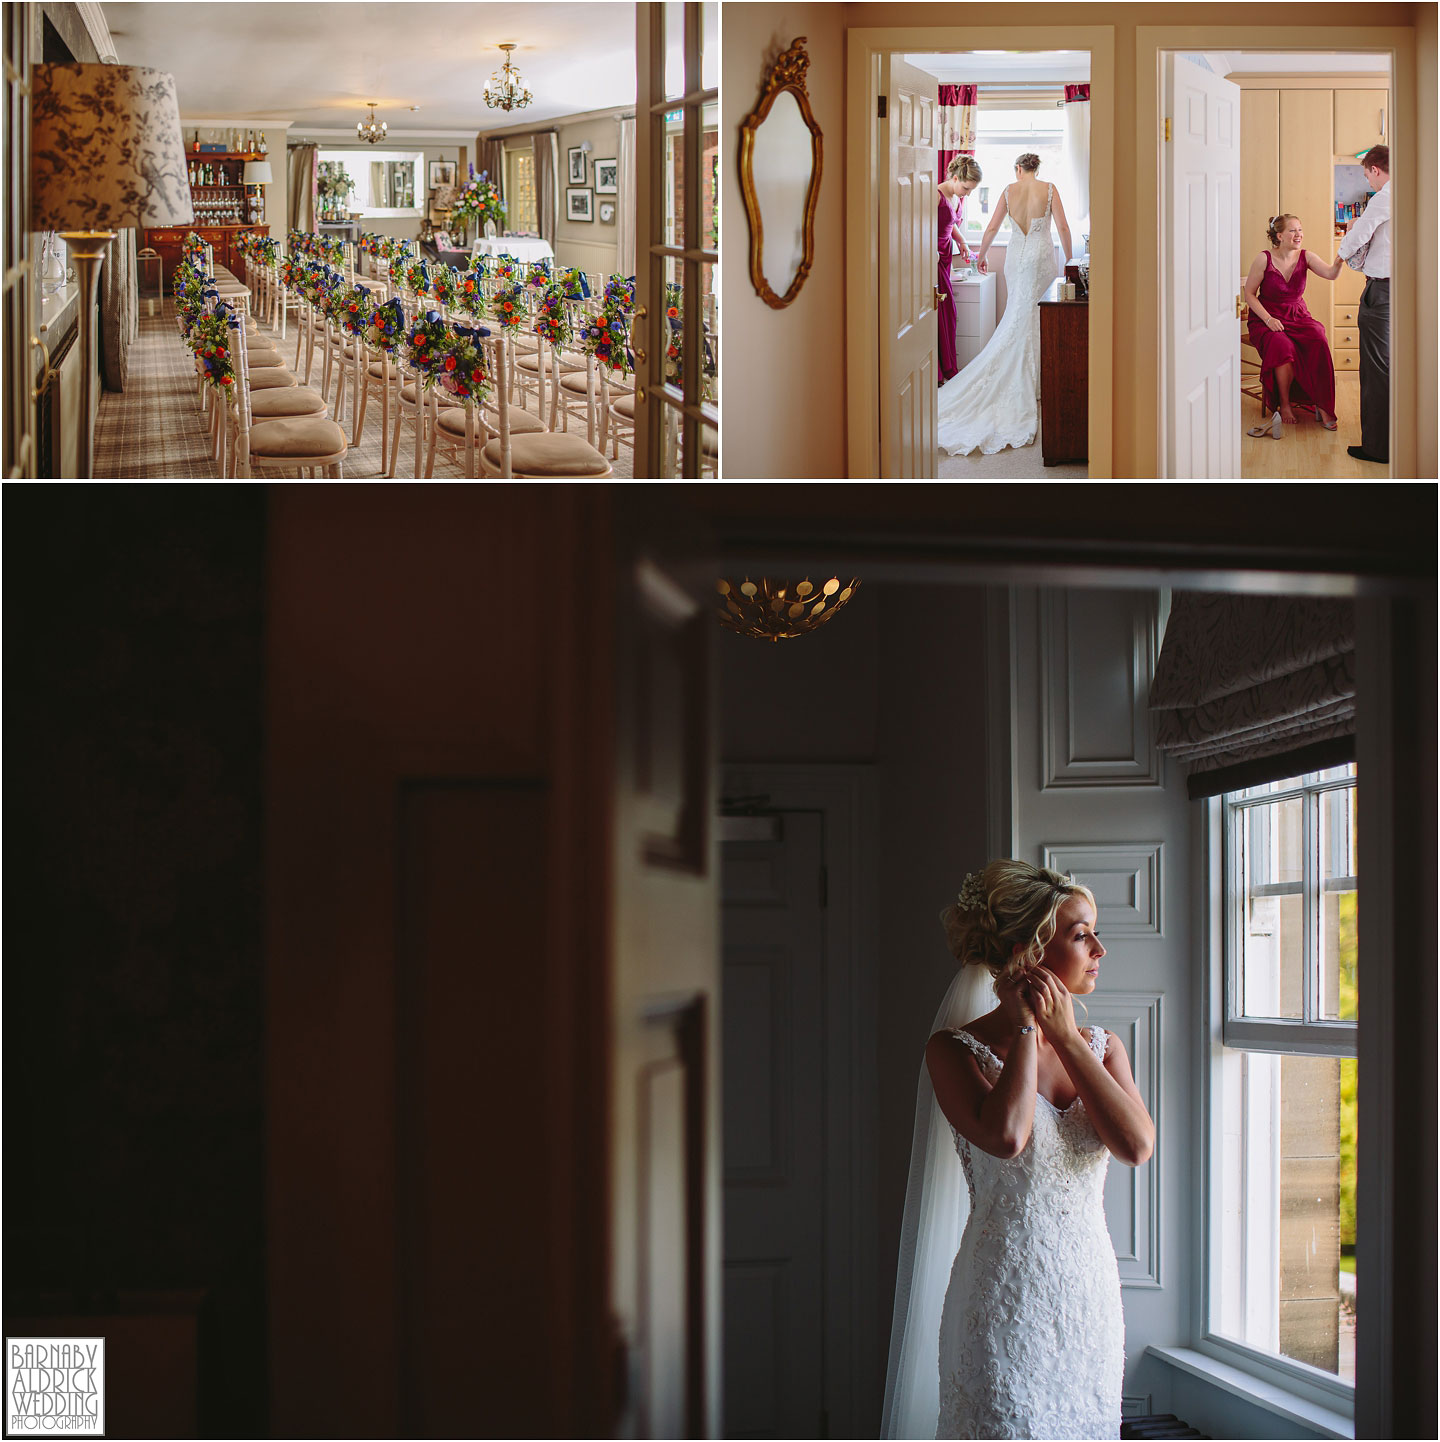 A bride gets ready at Saltmarshe Hall near Goole, Amazing Yorkshire Wedding Photos, Best Yorkshire Wedding Photos 2018